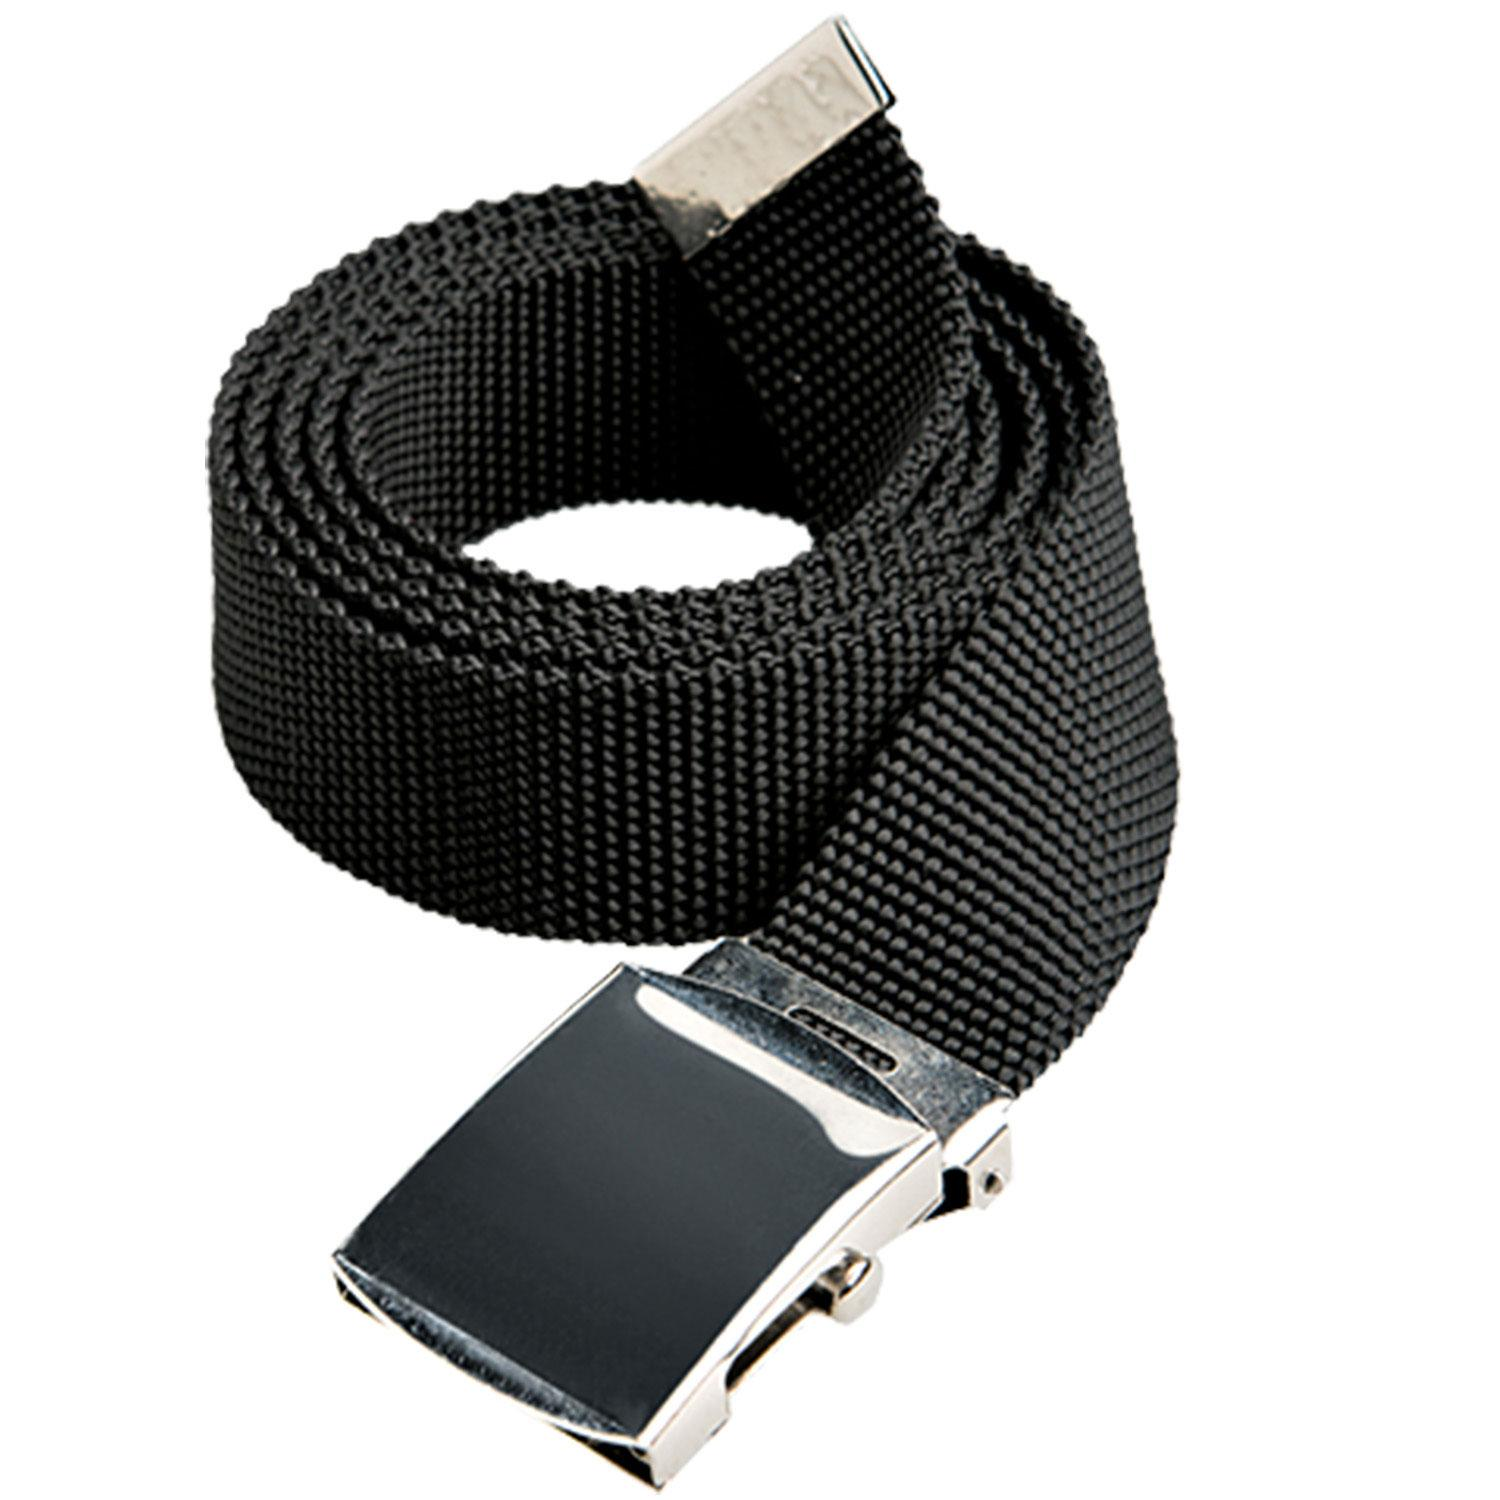 Black Nylon Belt 30mm - Silver Buckle